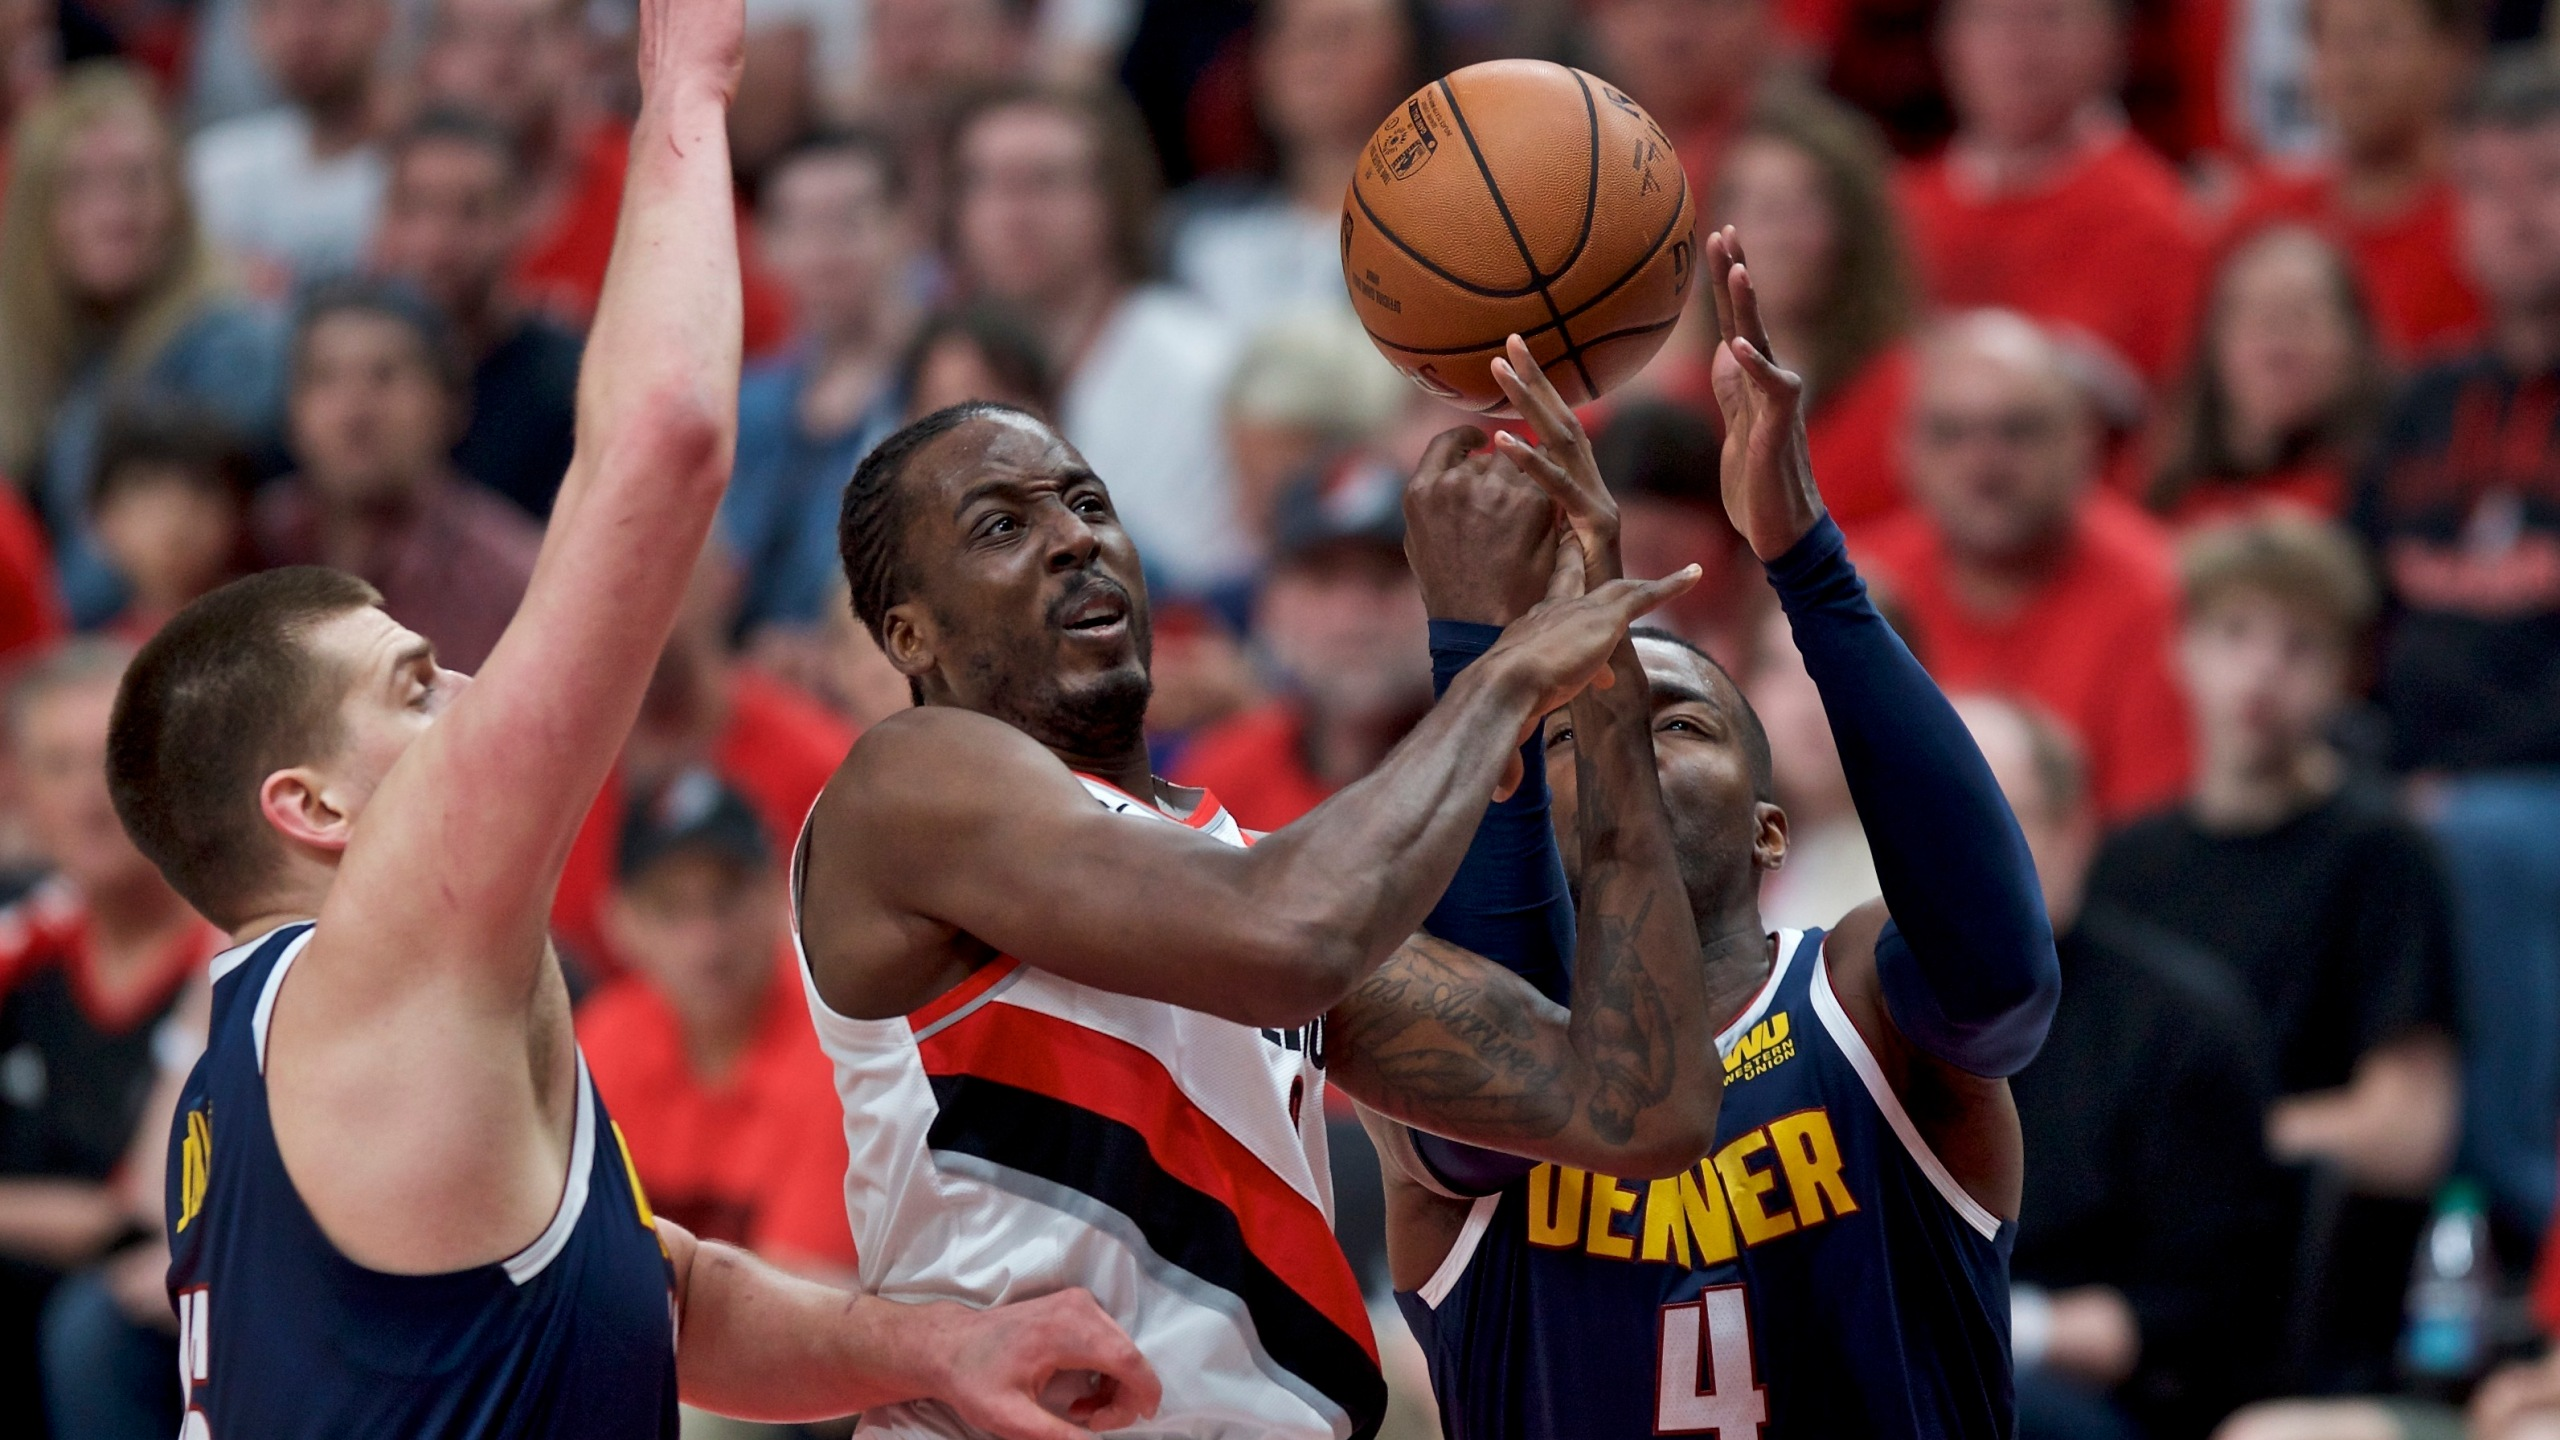 Nuggets_Trail_Blazers_Basketball_14083-159532.jpg81314285